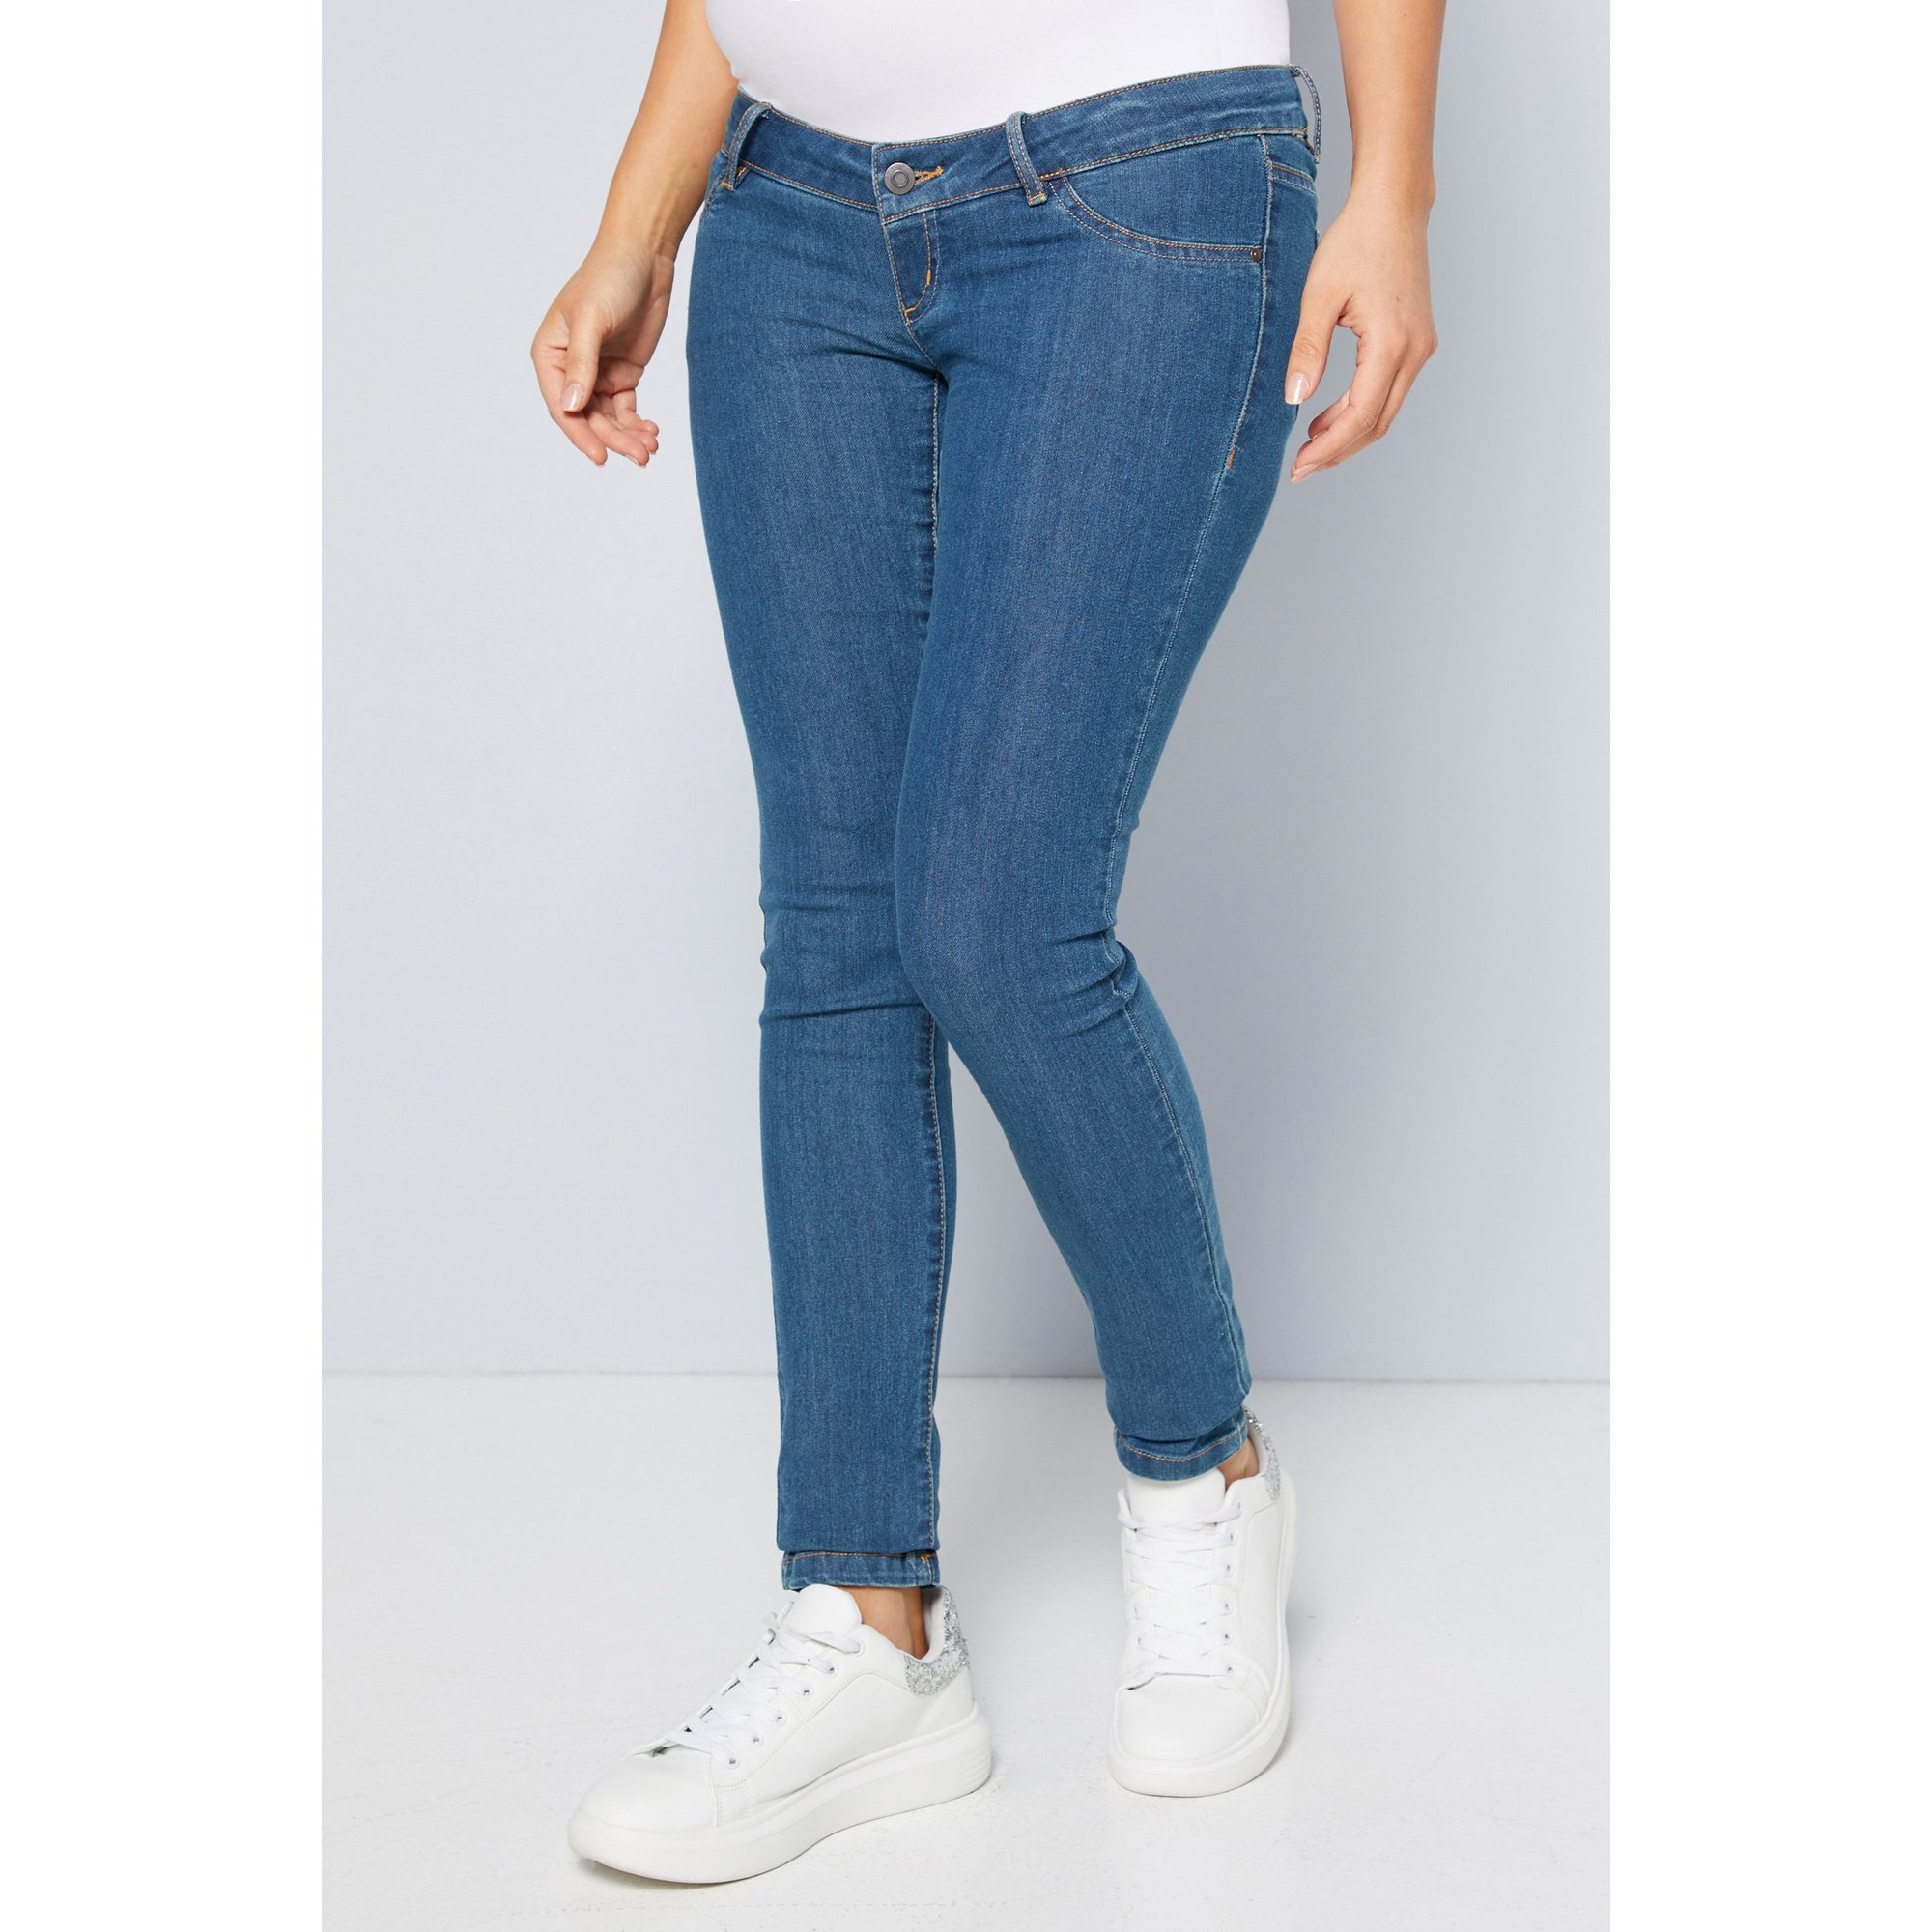 Image of Mama:licious Medium Blue Maternity Over The Bump Skinny Jeans